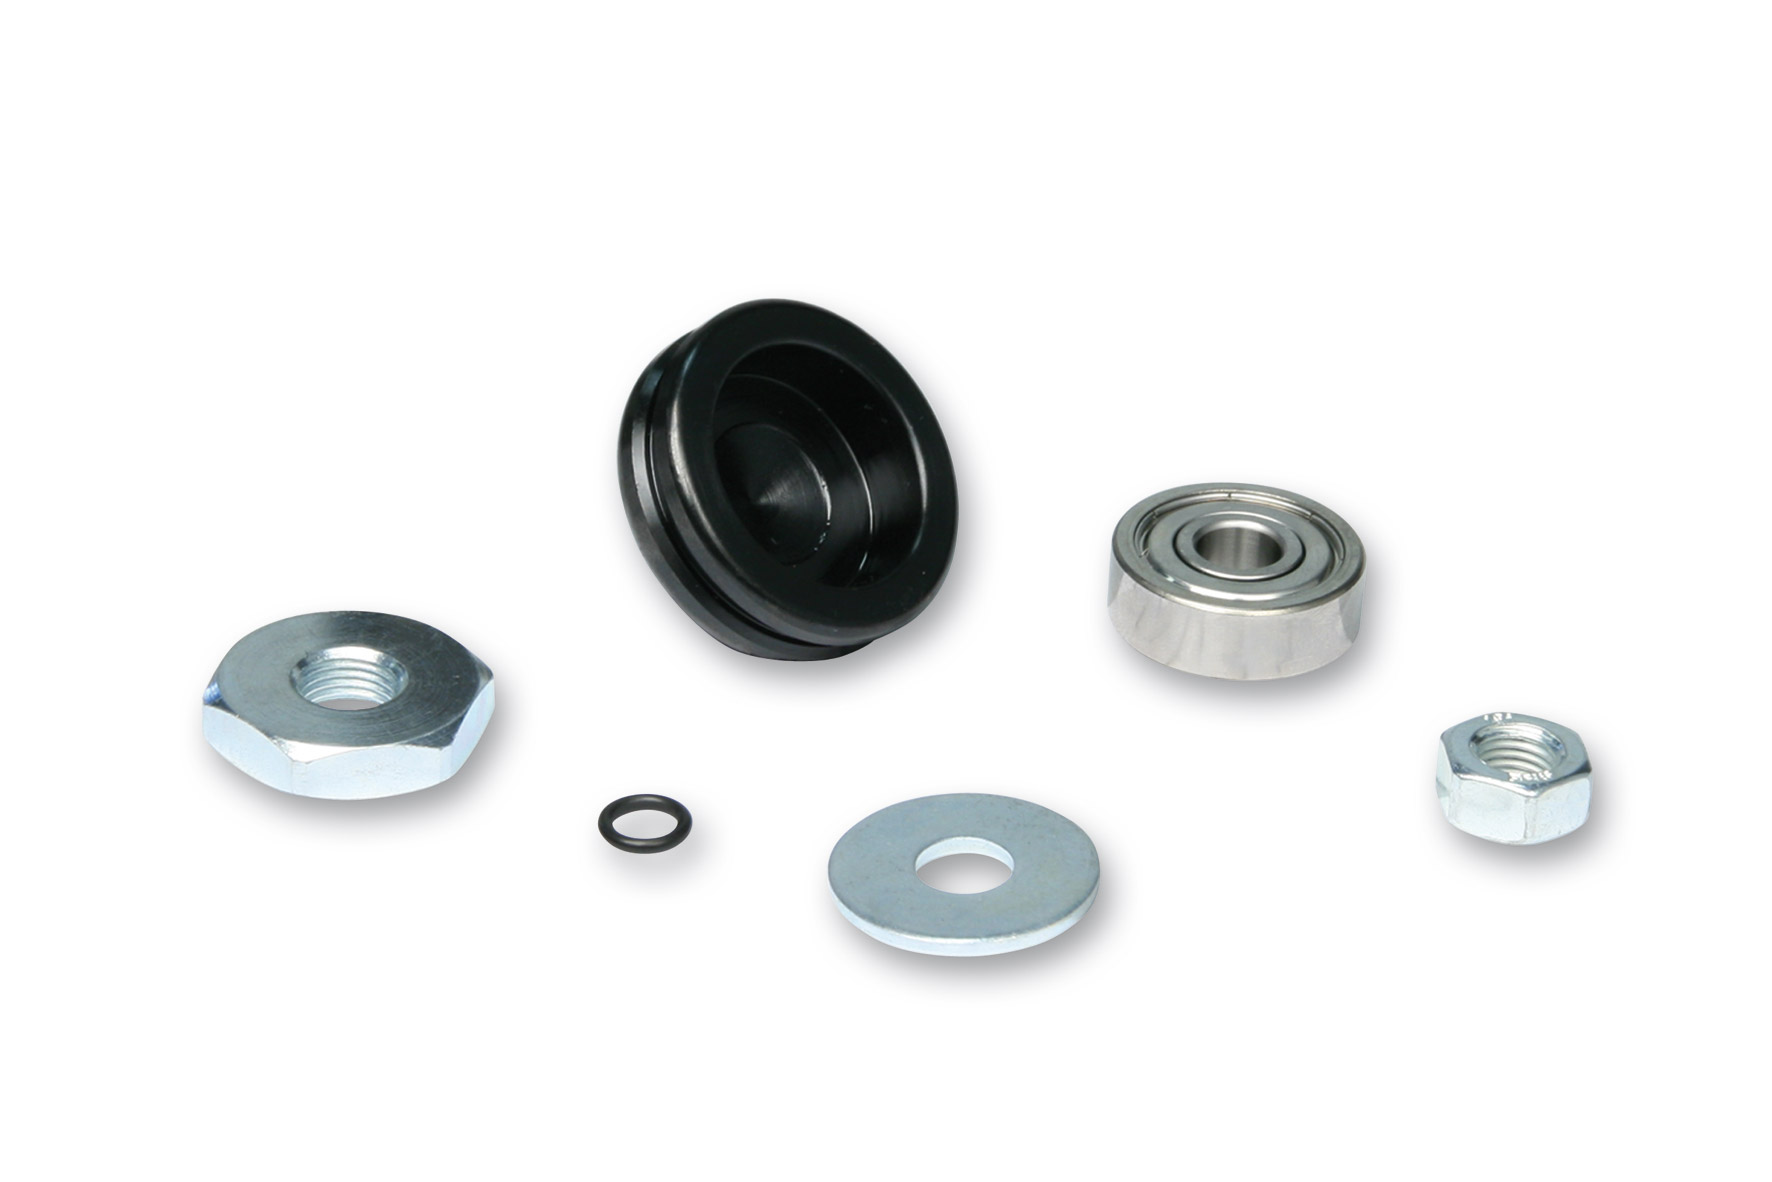 RADIAL ROL. BEARING/BOLTS KIT for PRIMARY GEARS (THIRD SUPPORT)